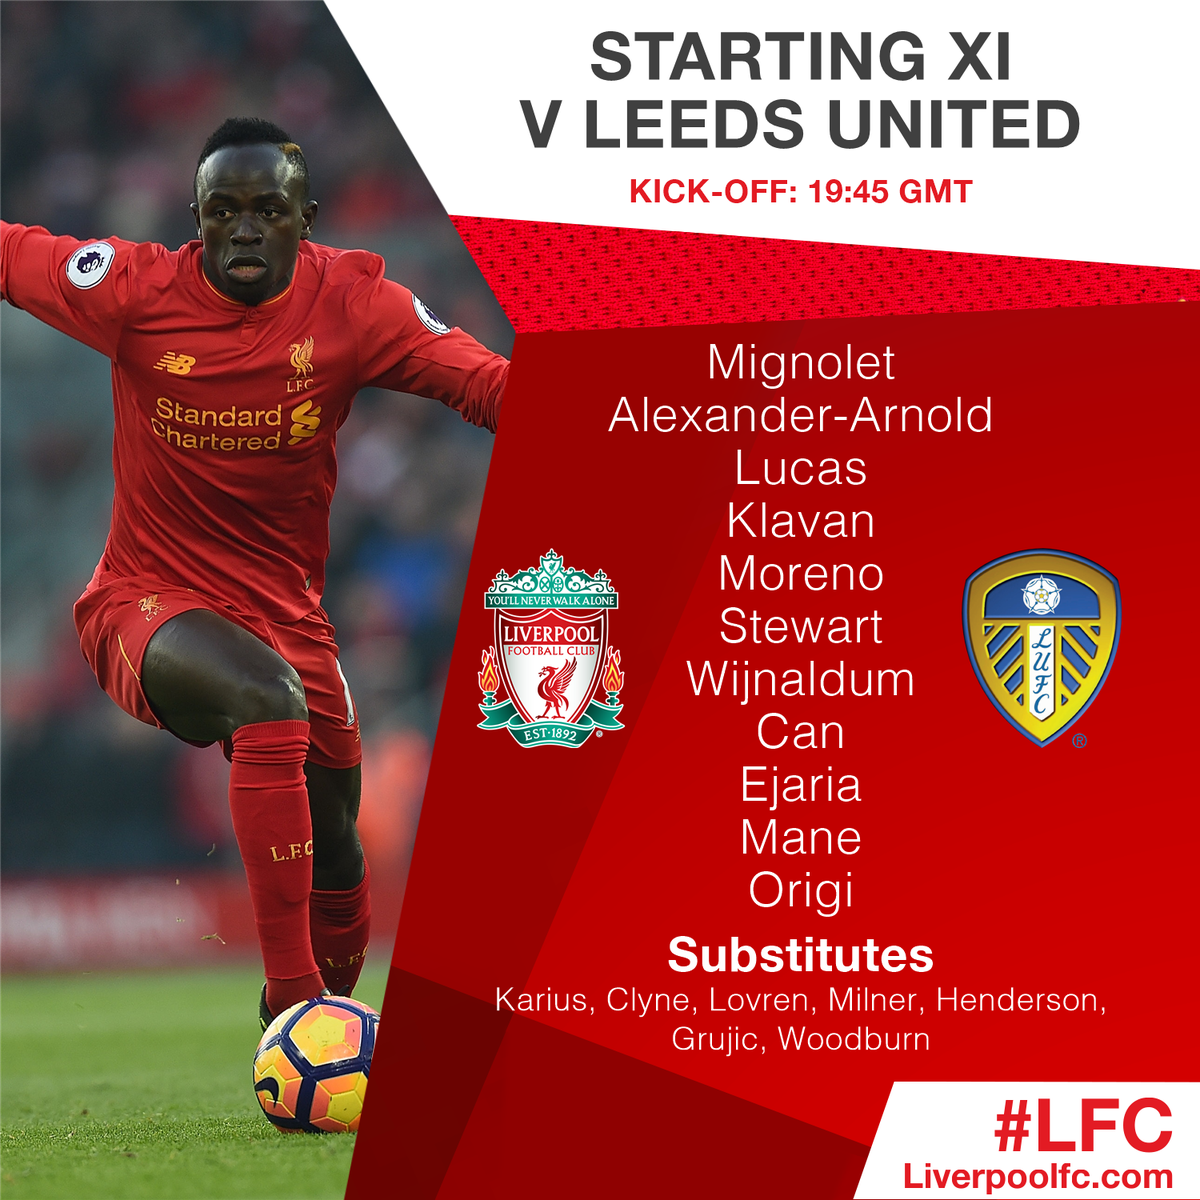 Barcelona 3 0 Liverpool In Game And Post Match Discussion: Liverpool 2-0 Leeds United: In Game And Post Match Discussion